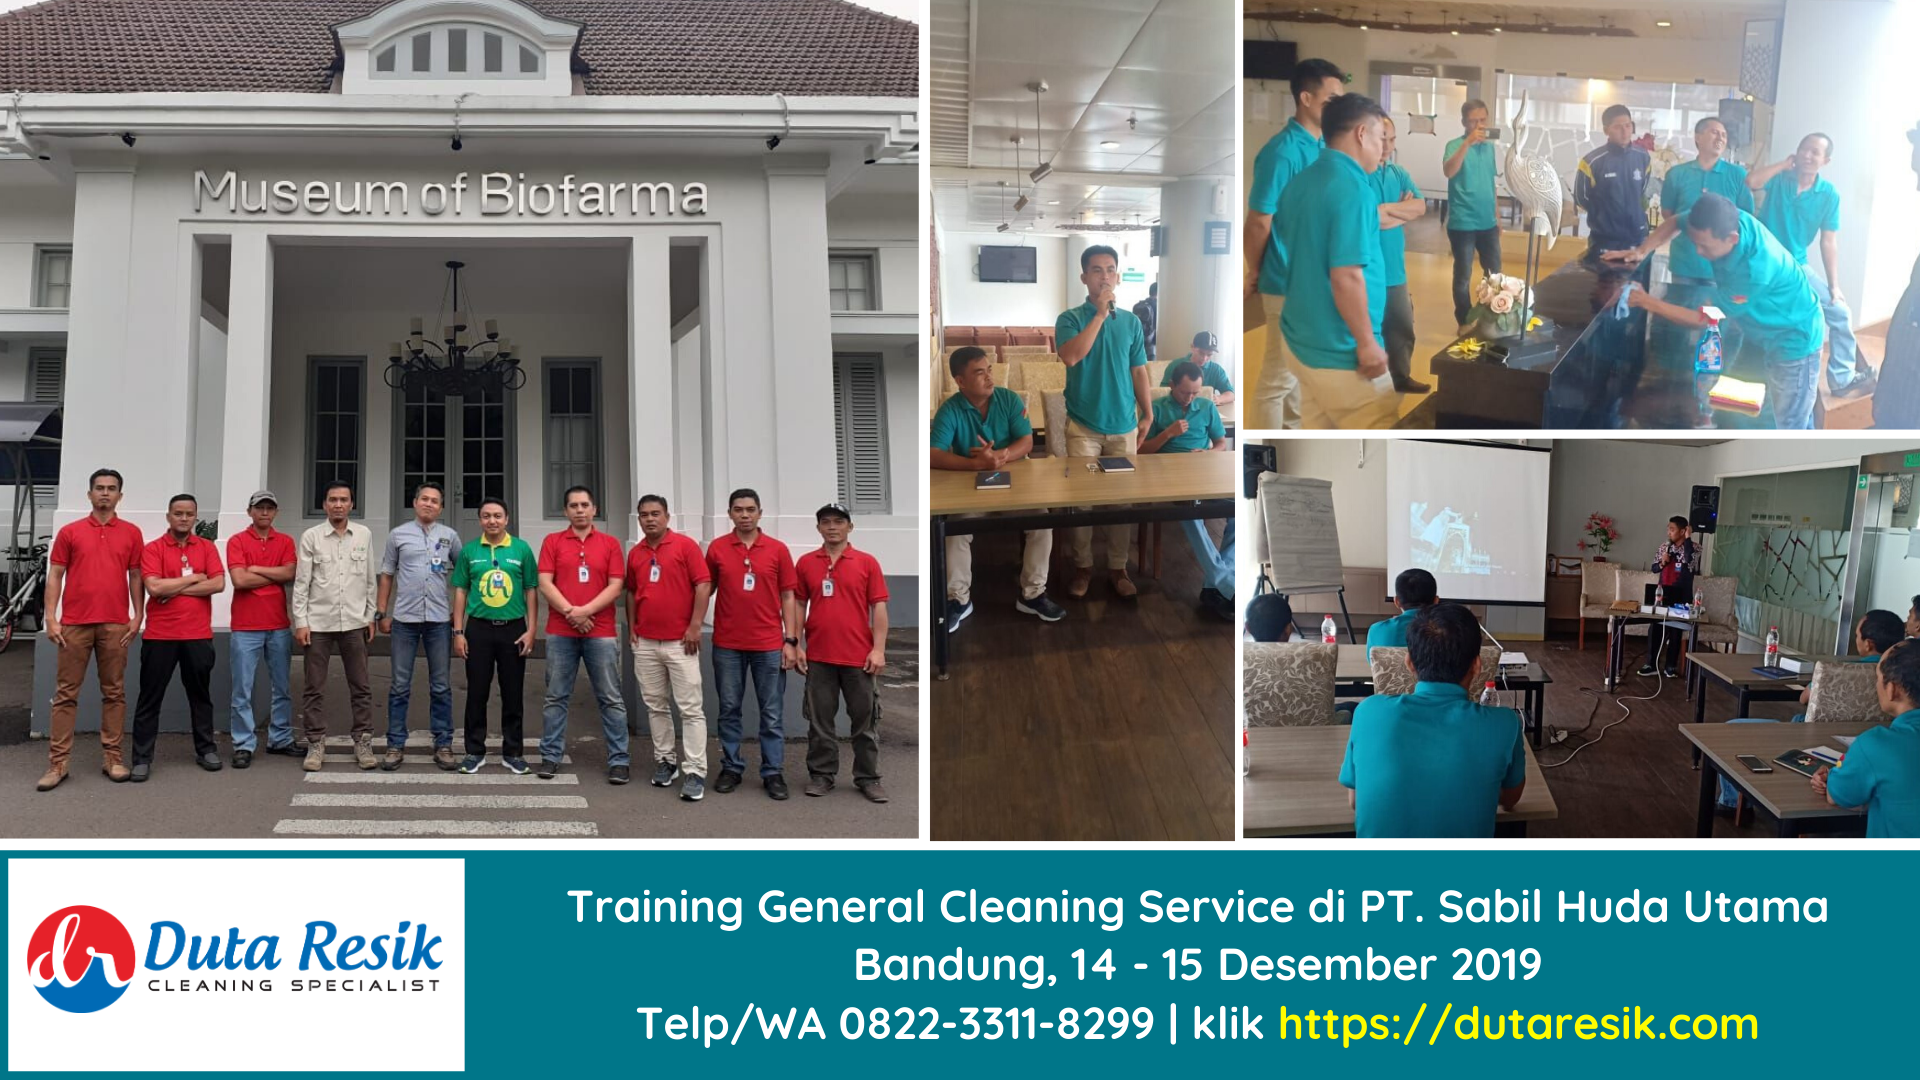 Training General Cleaning Service PT Sabil Huda Utama Bandung